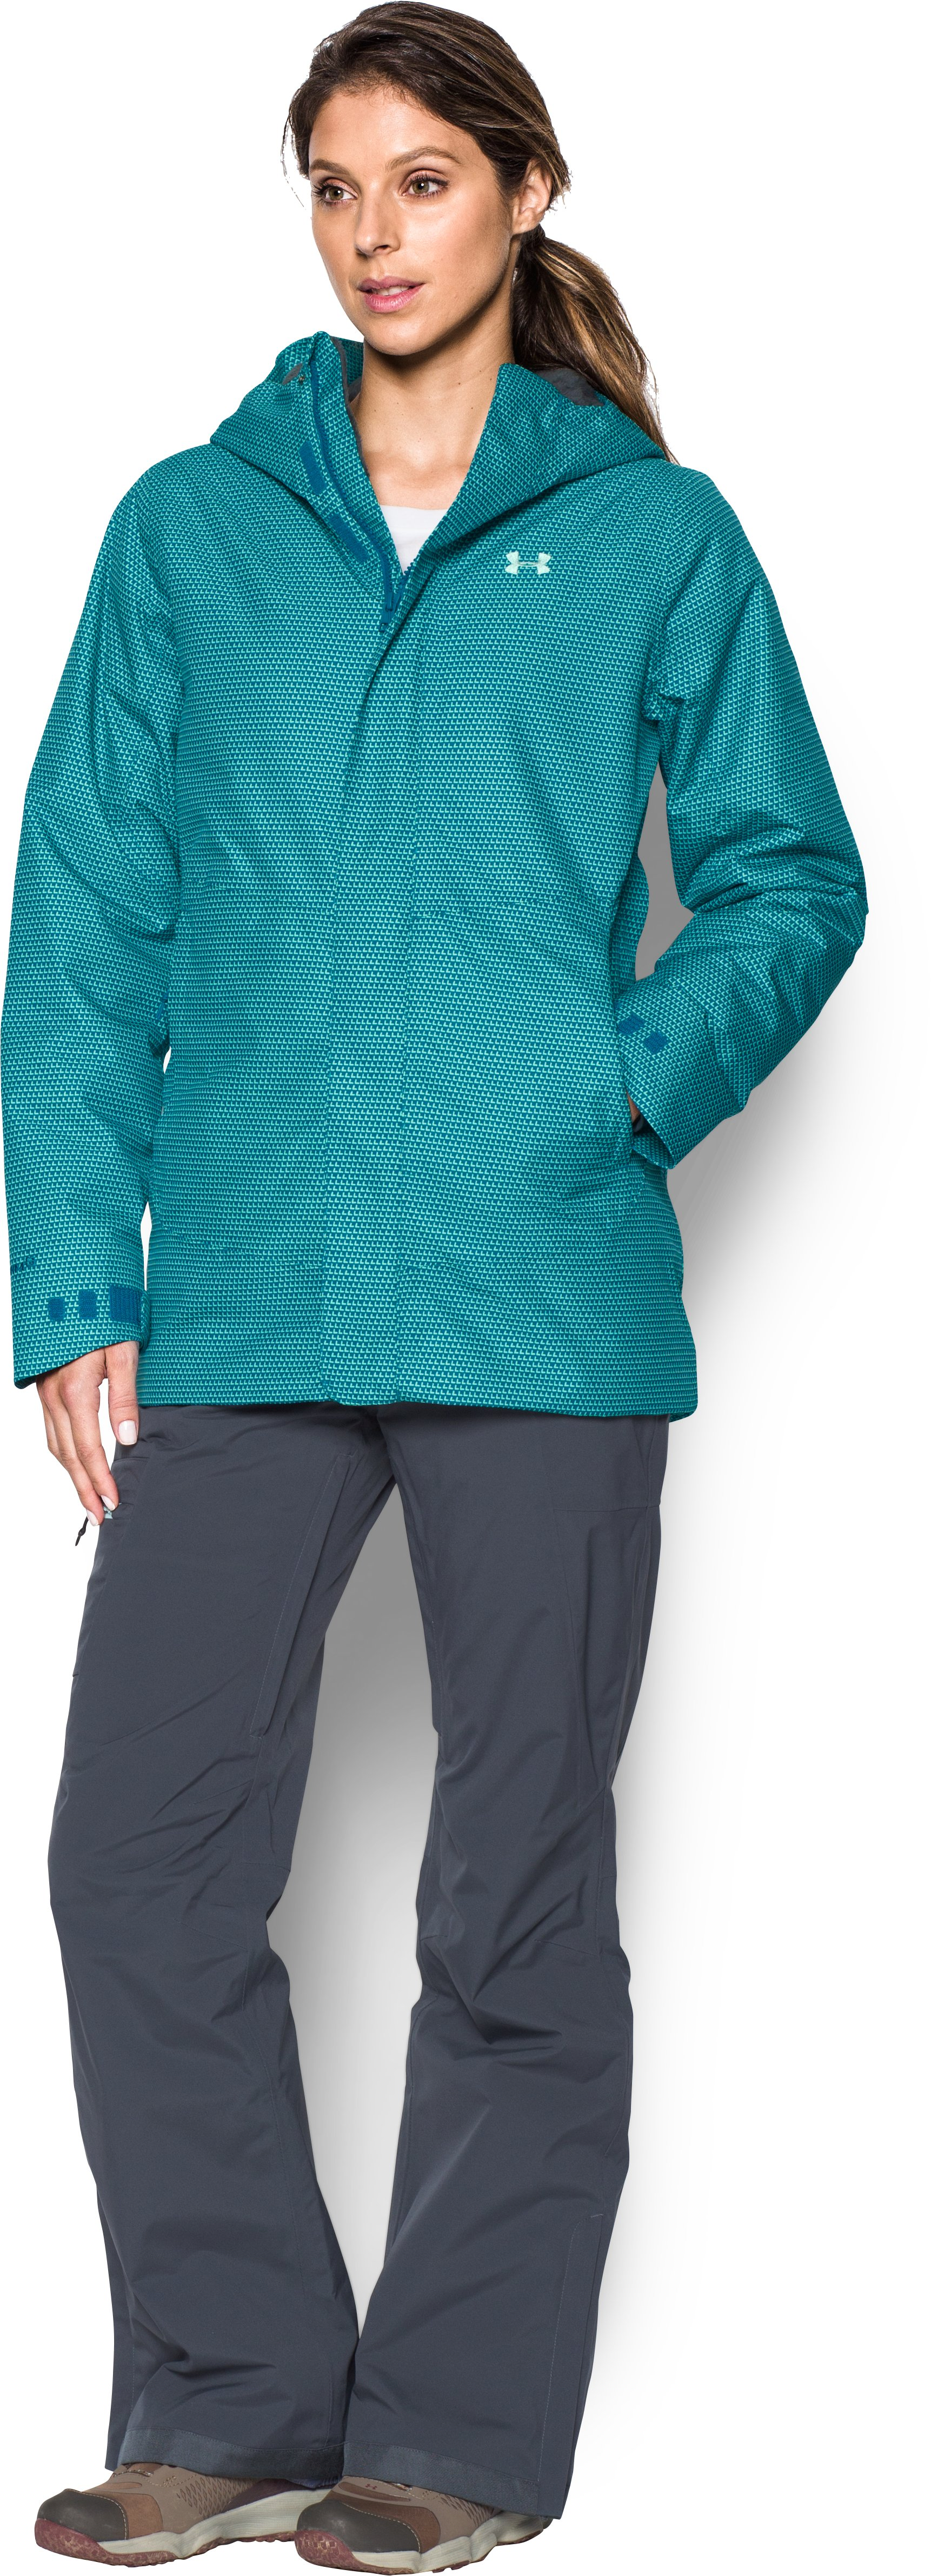 Women's UA ColdGear® Infrared Powerline Insulated Jacket, PEACOCK